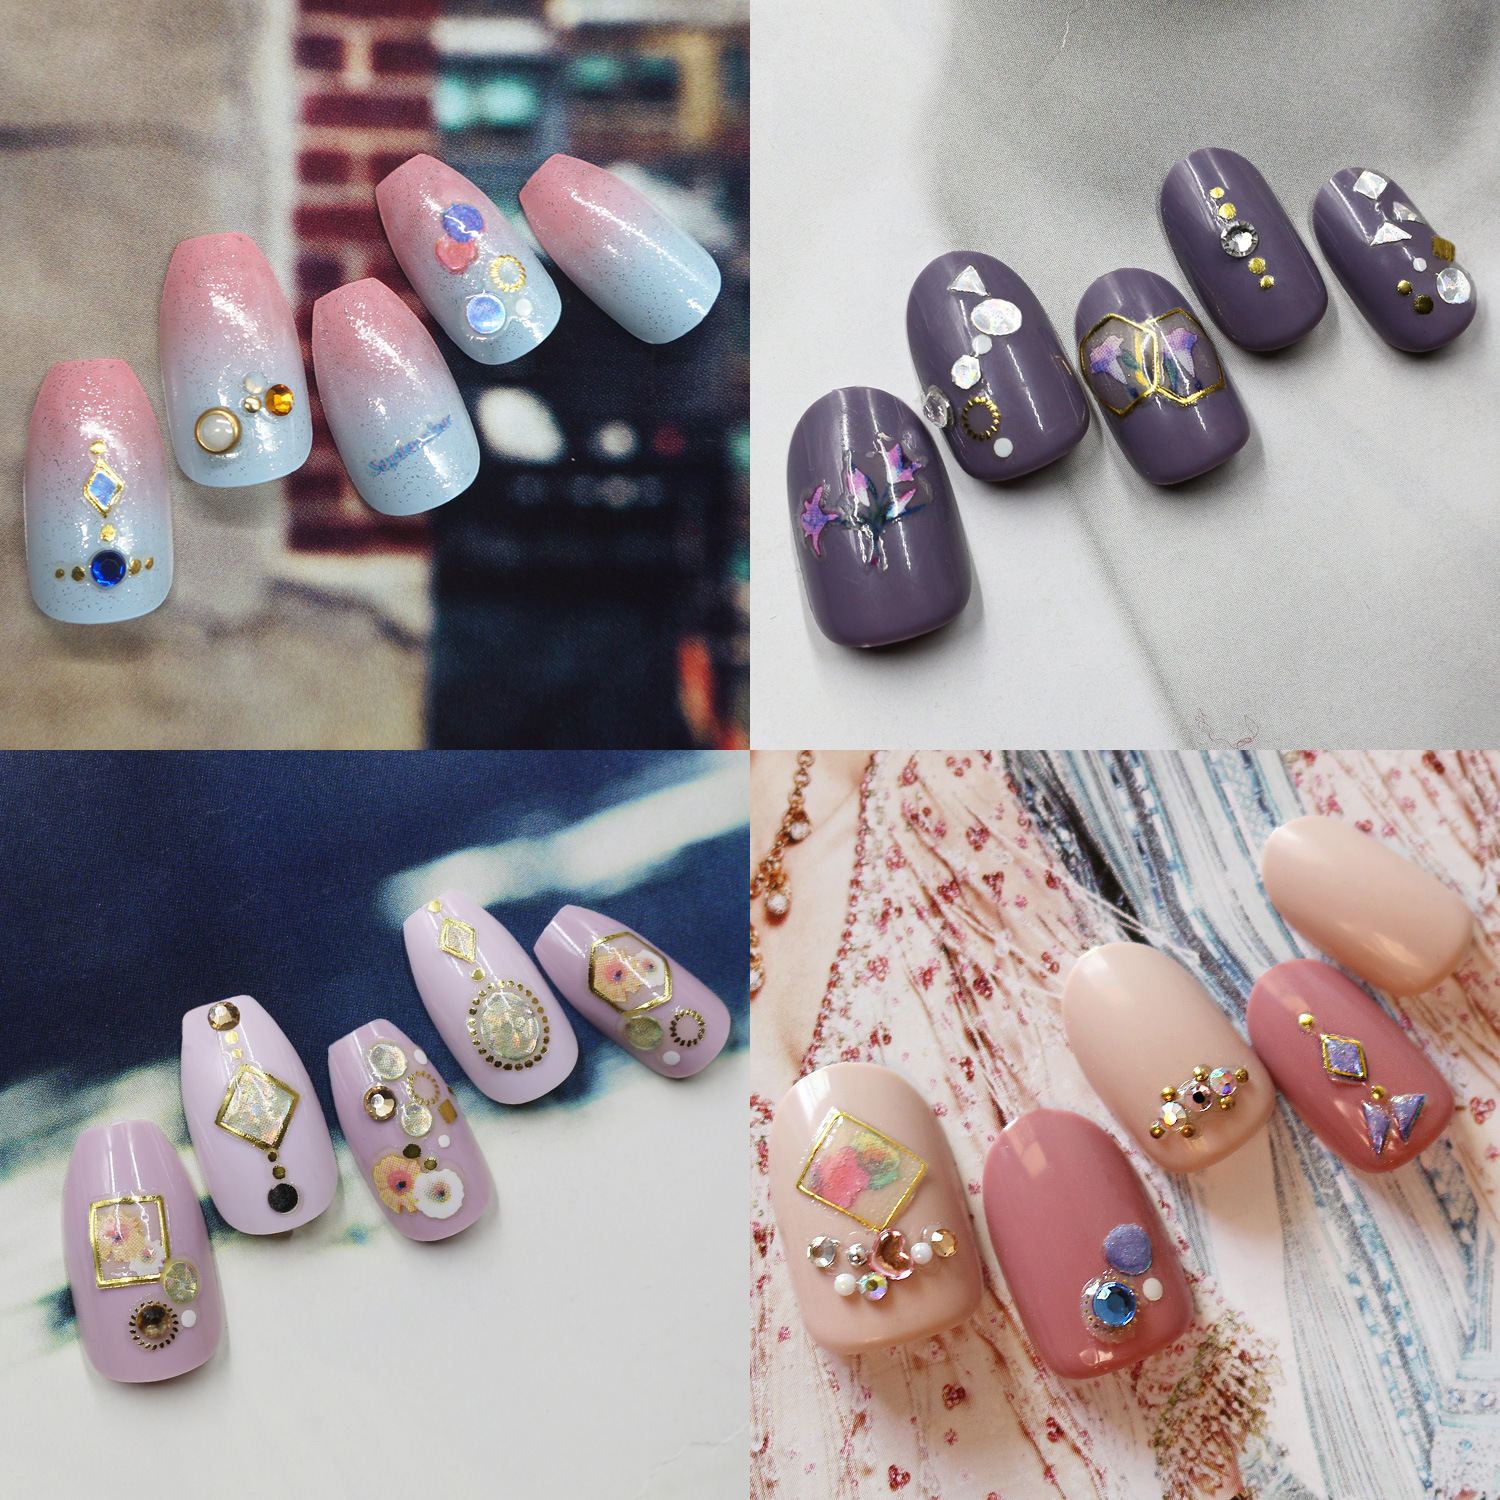 Joyme Nail Sticker Collection Gel 3D Manicure Flower Stickers Japan Self-Adhesive Waterproof